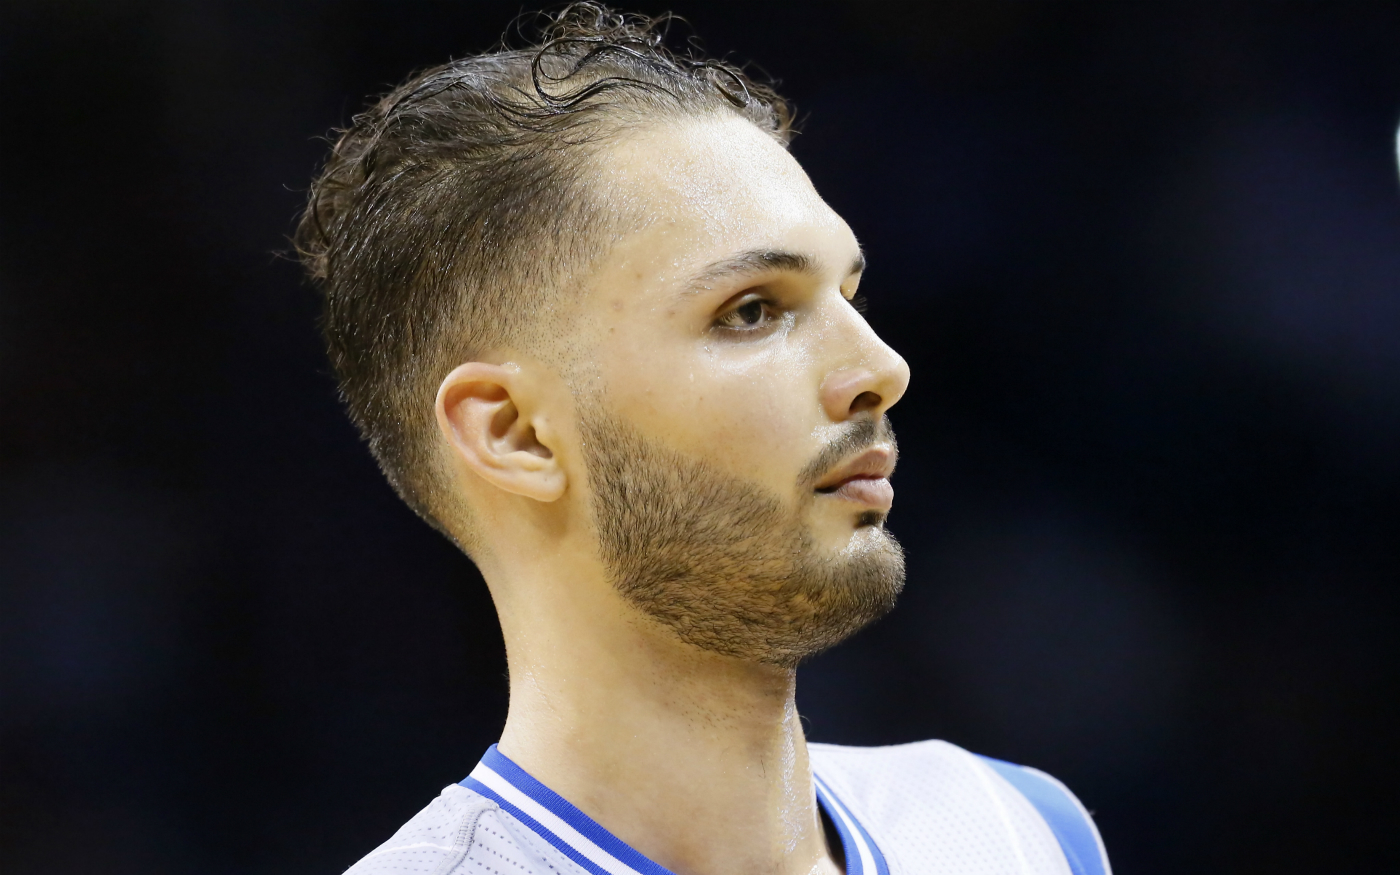 Evan Fournier vide son sac